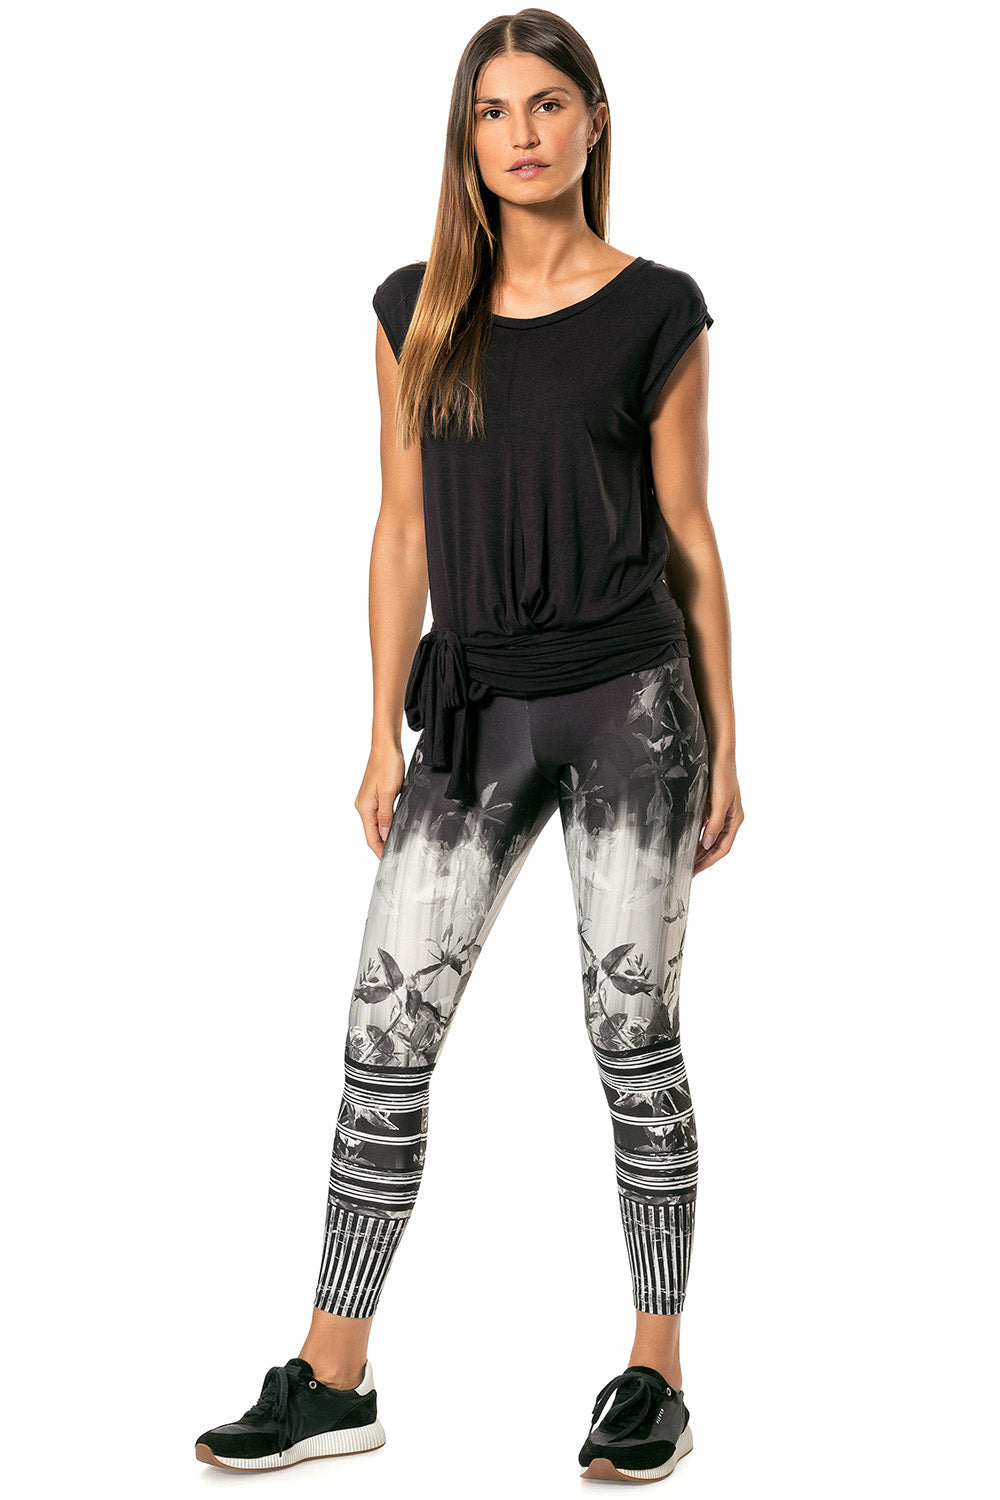 Action Body Lace Tank